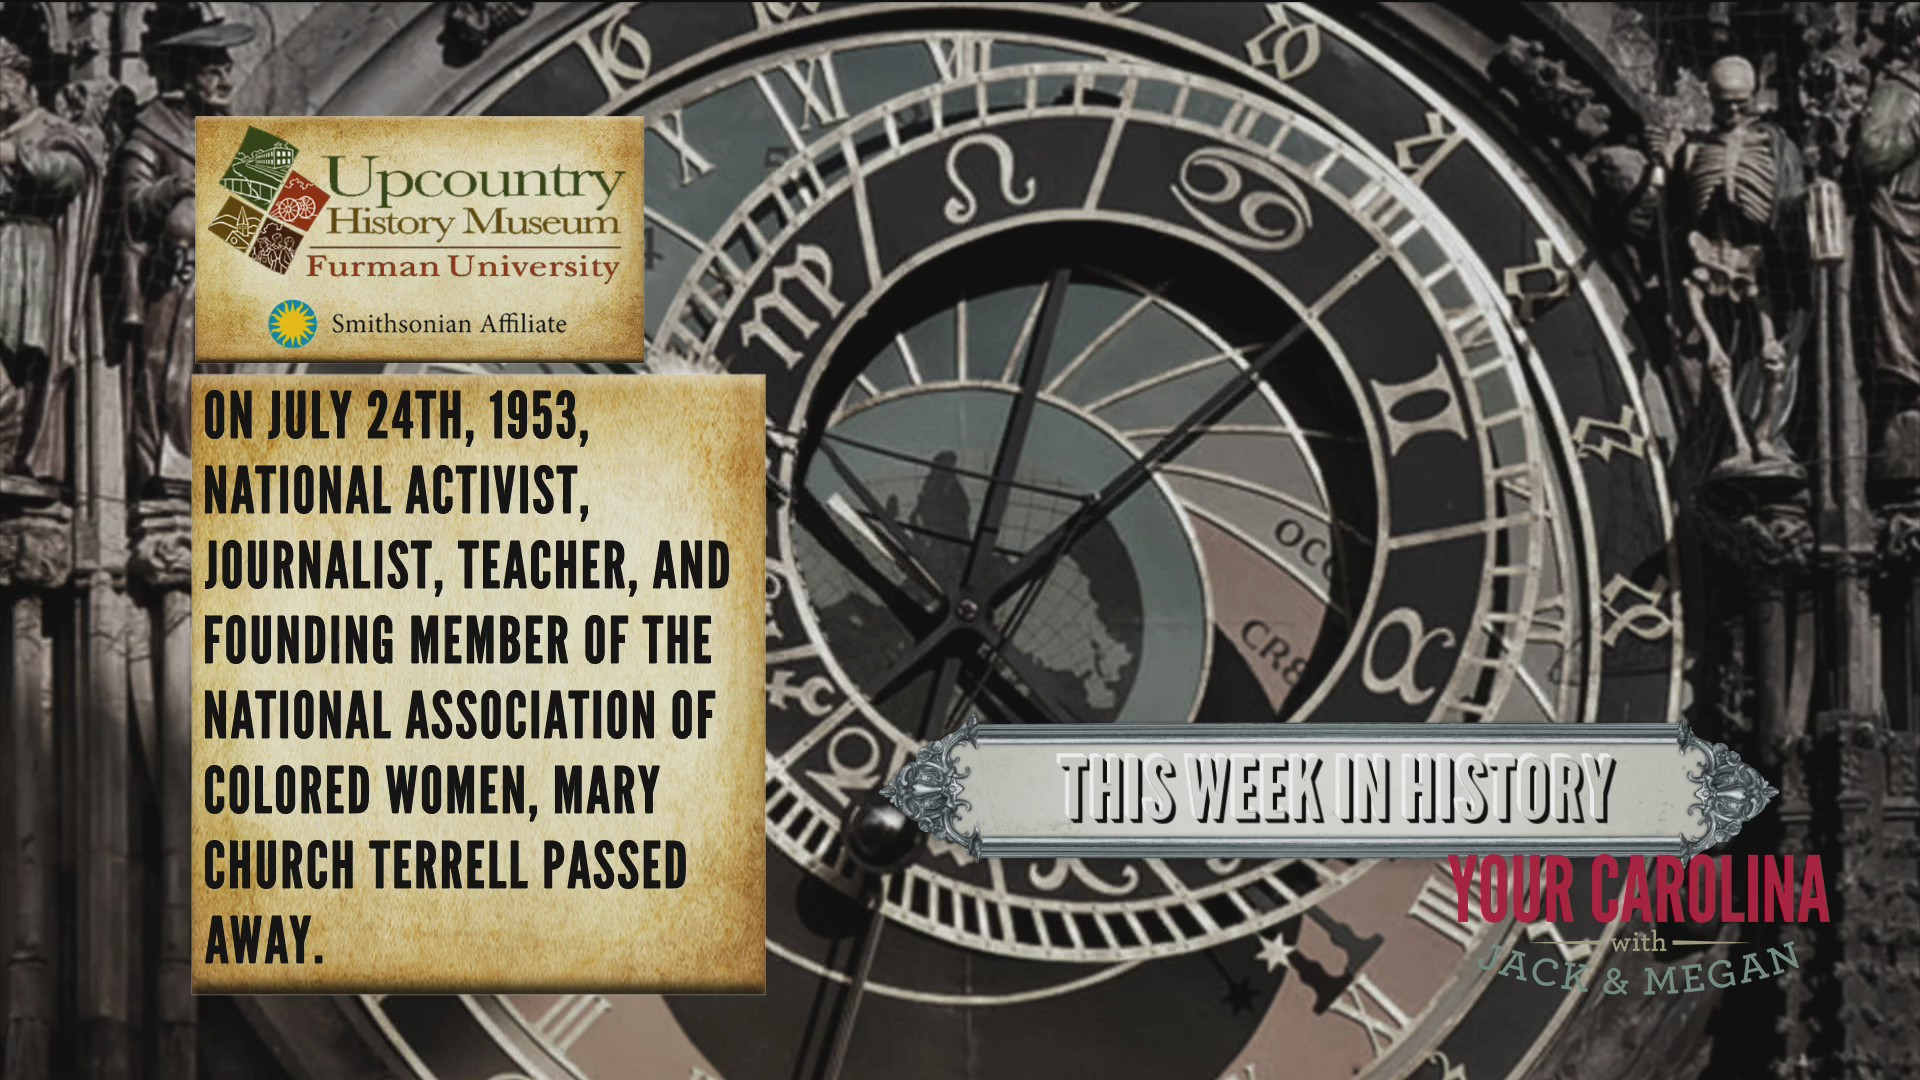 This Week in History - Mary Church Terrell